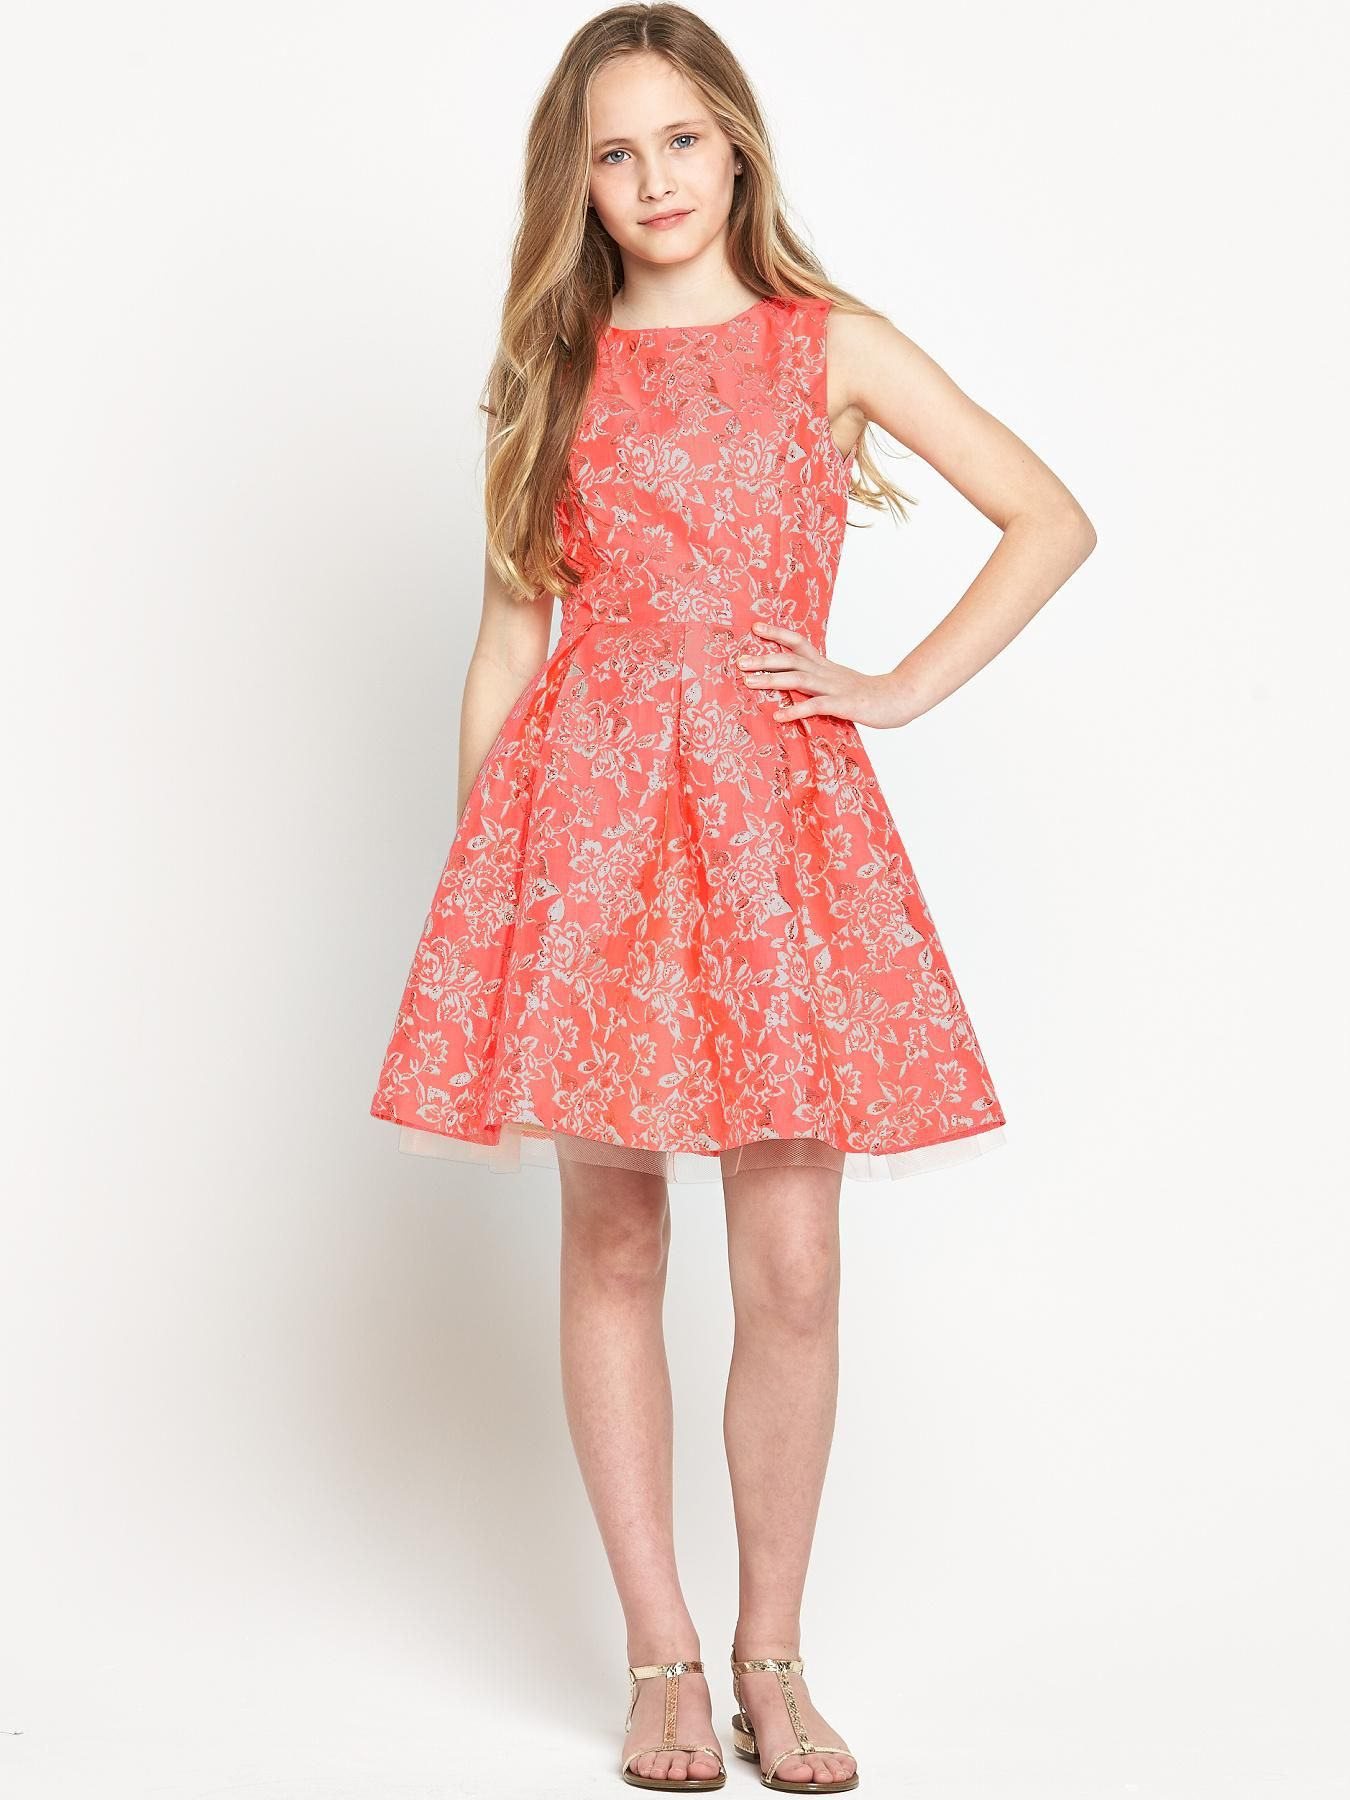 vestidos para fiesta para niña 11 años | dresses that are so cute ...